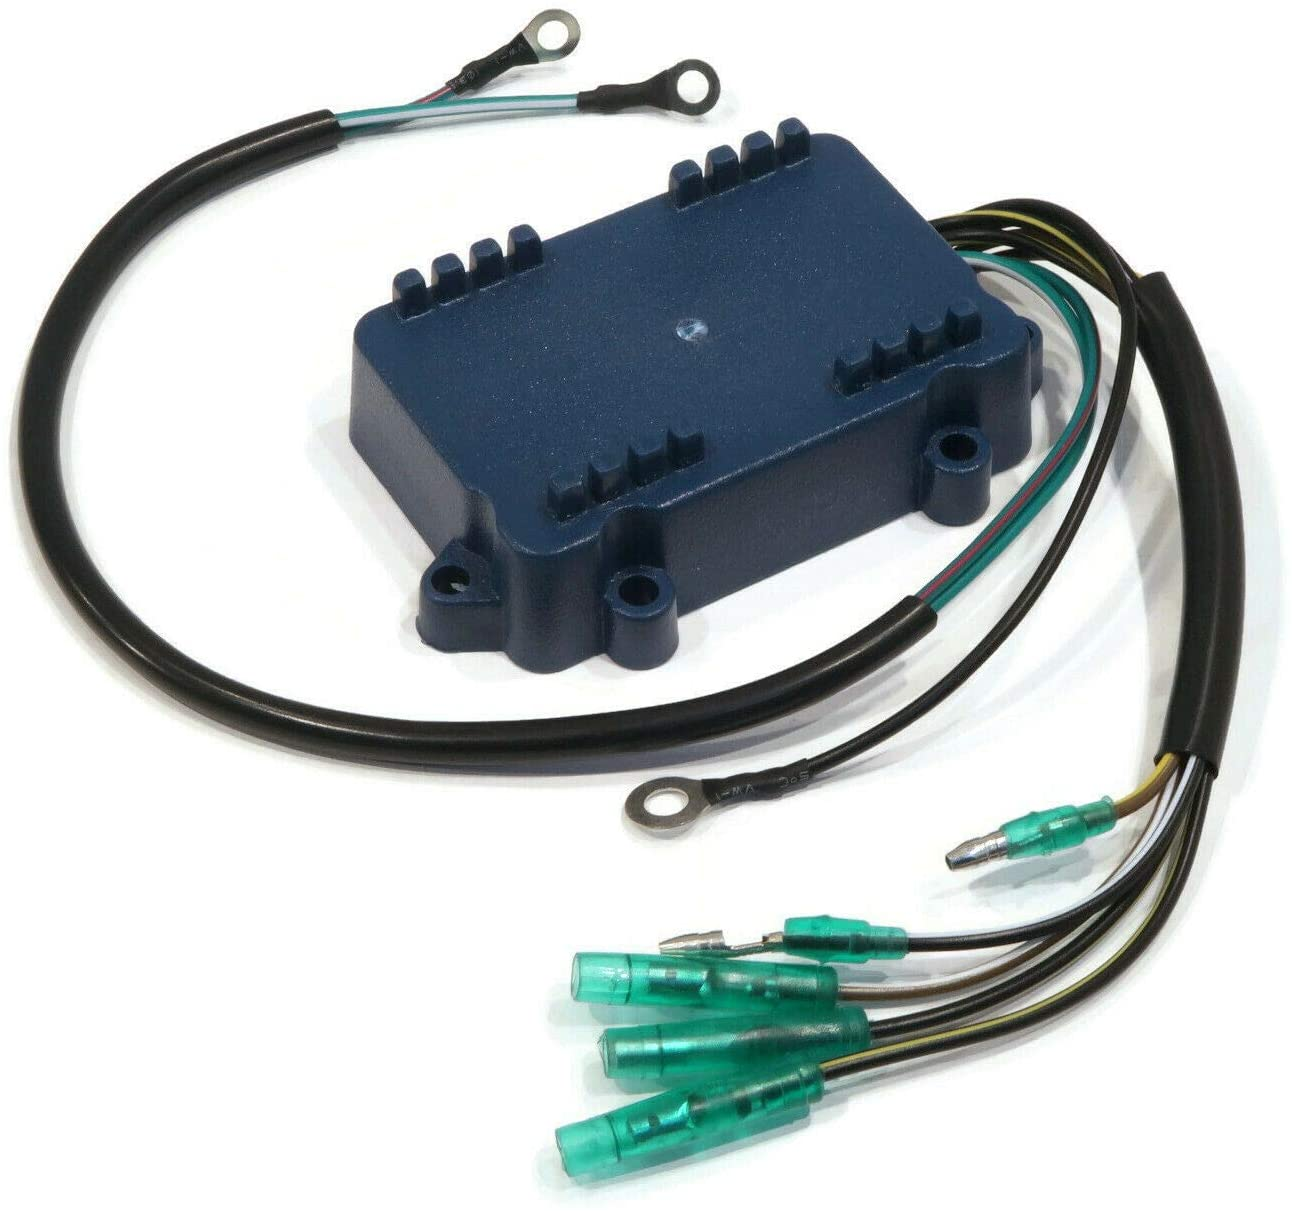 The ROP Shop | Switch Box for 1984 Mercury 1035534, 1035524, 1018224, 1025224, 7020204 Engines